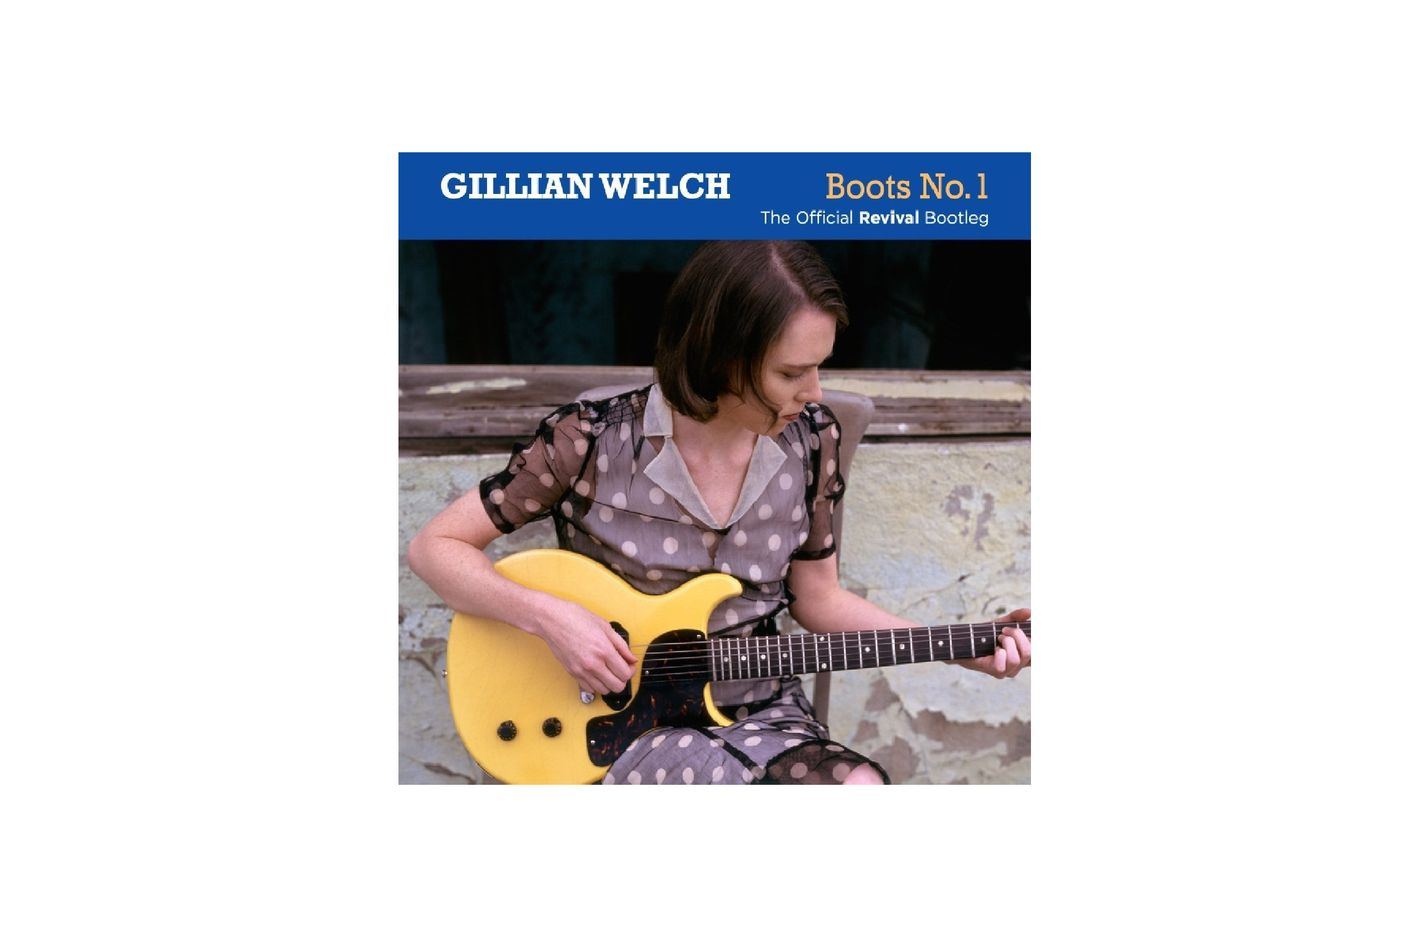 Gillian Welch, Boots No. 1: The Official Revival Bootleg